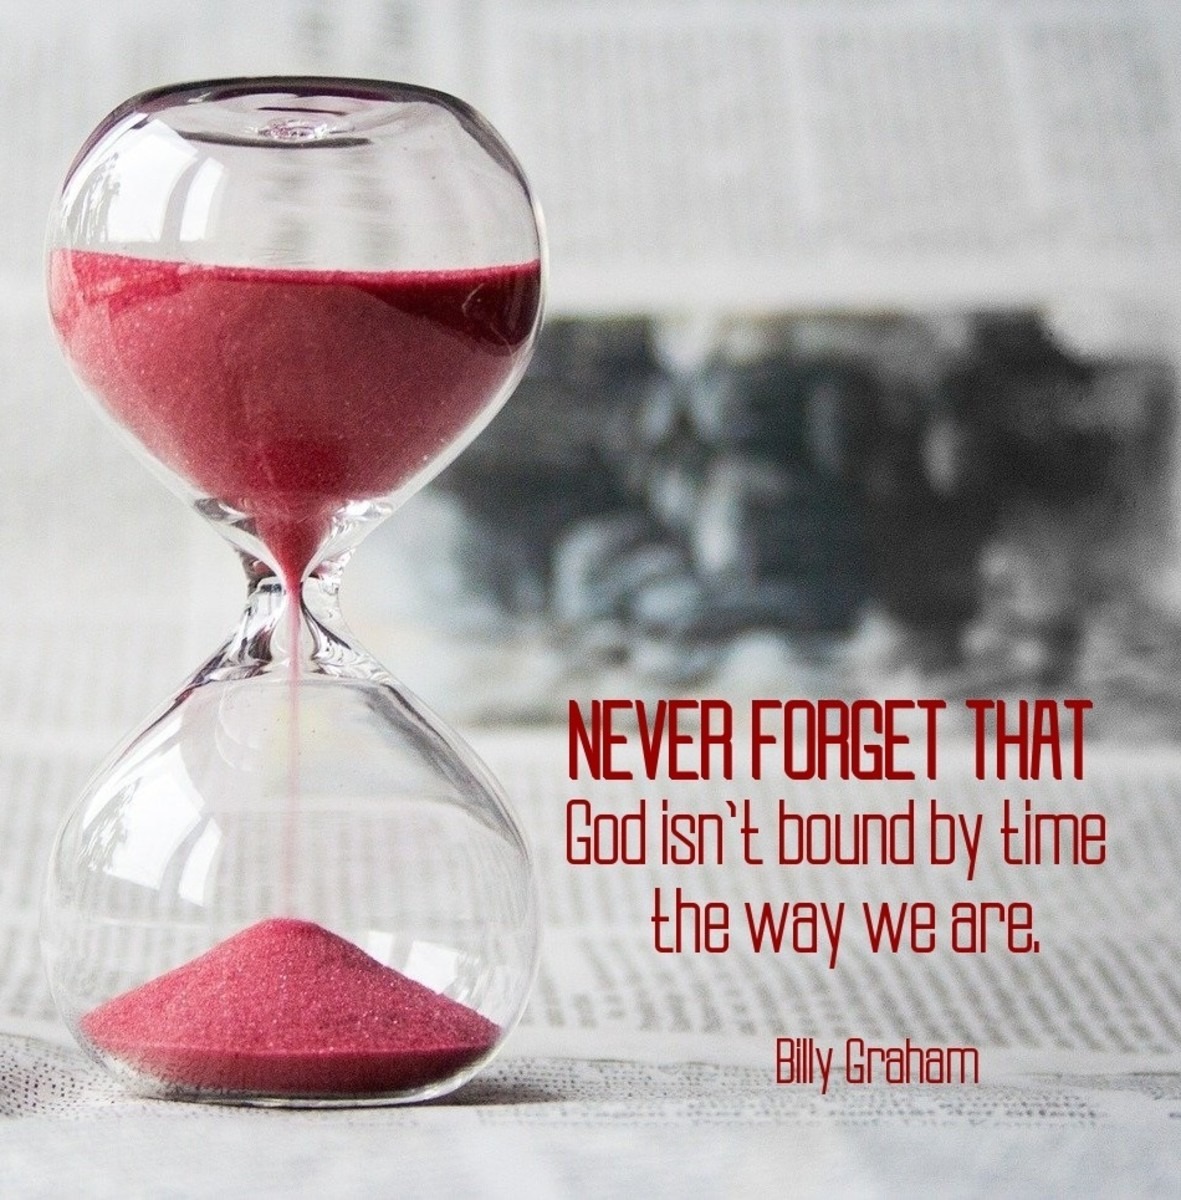 God isn't bound by time the way we are.